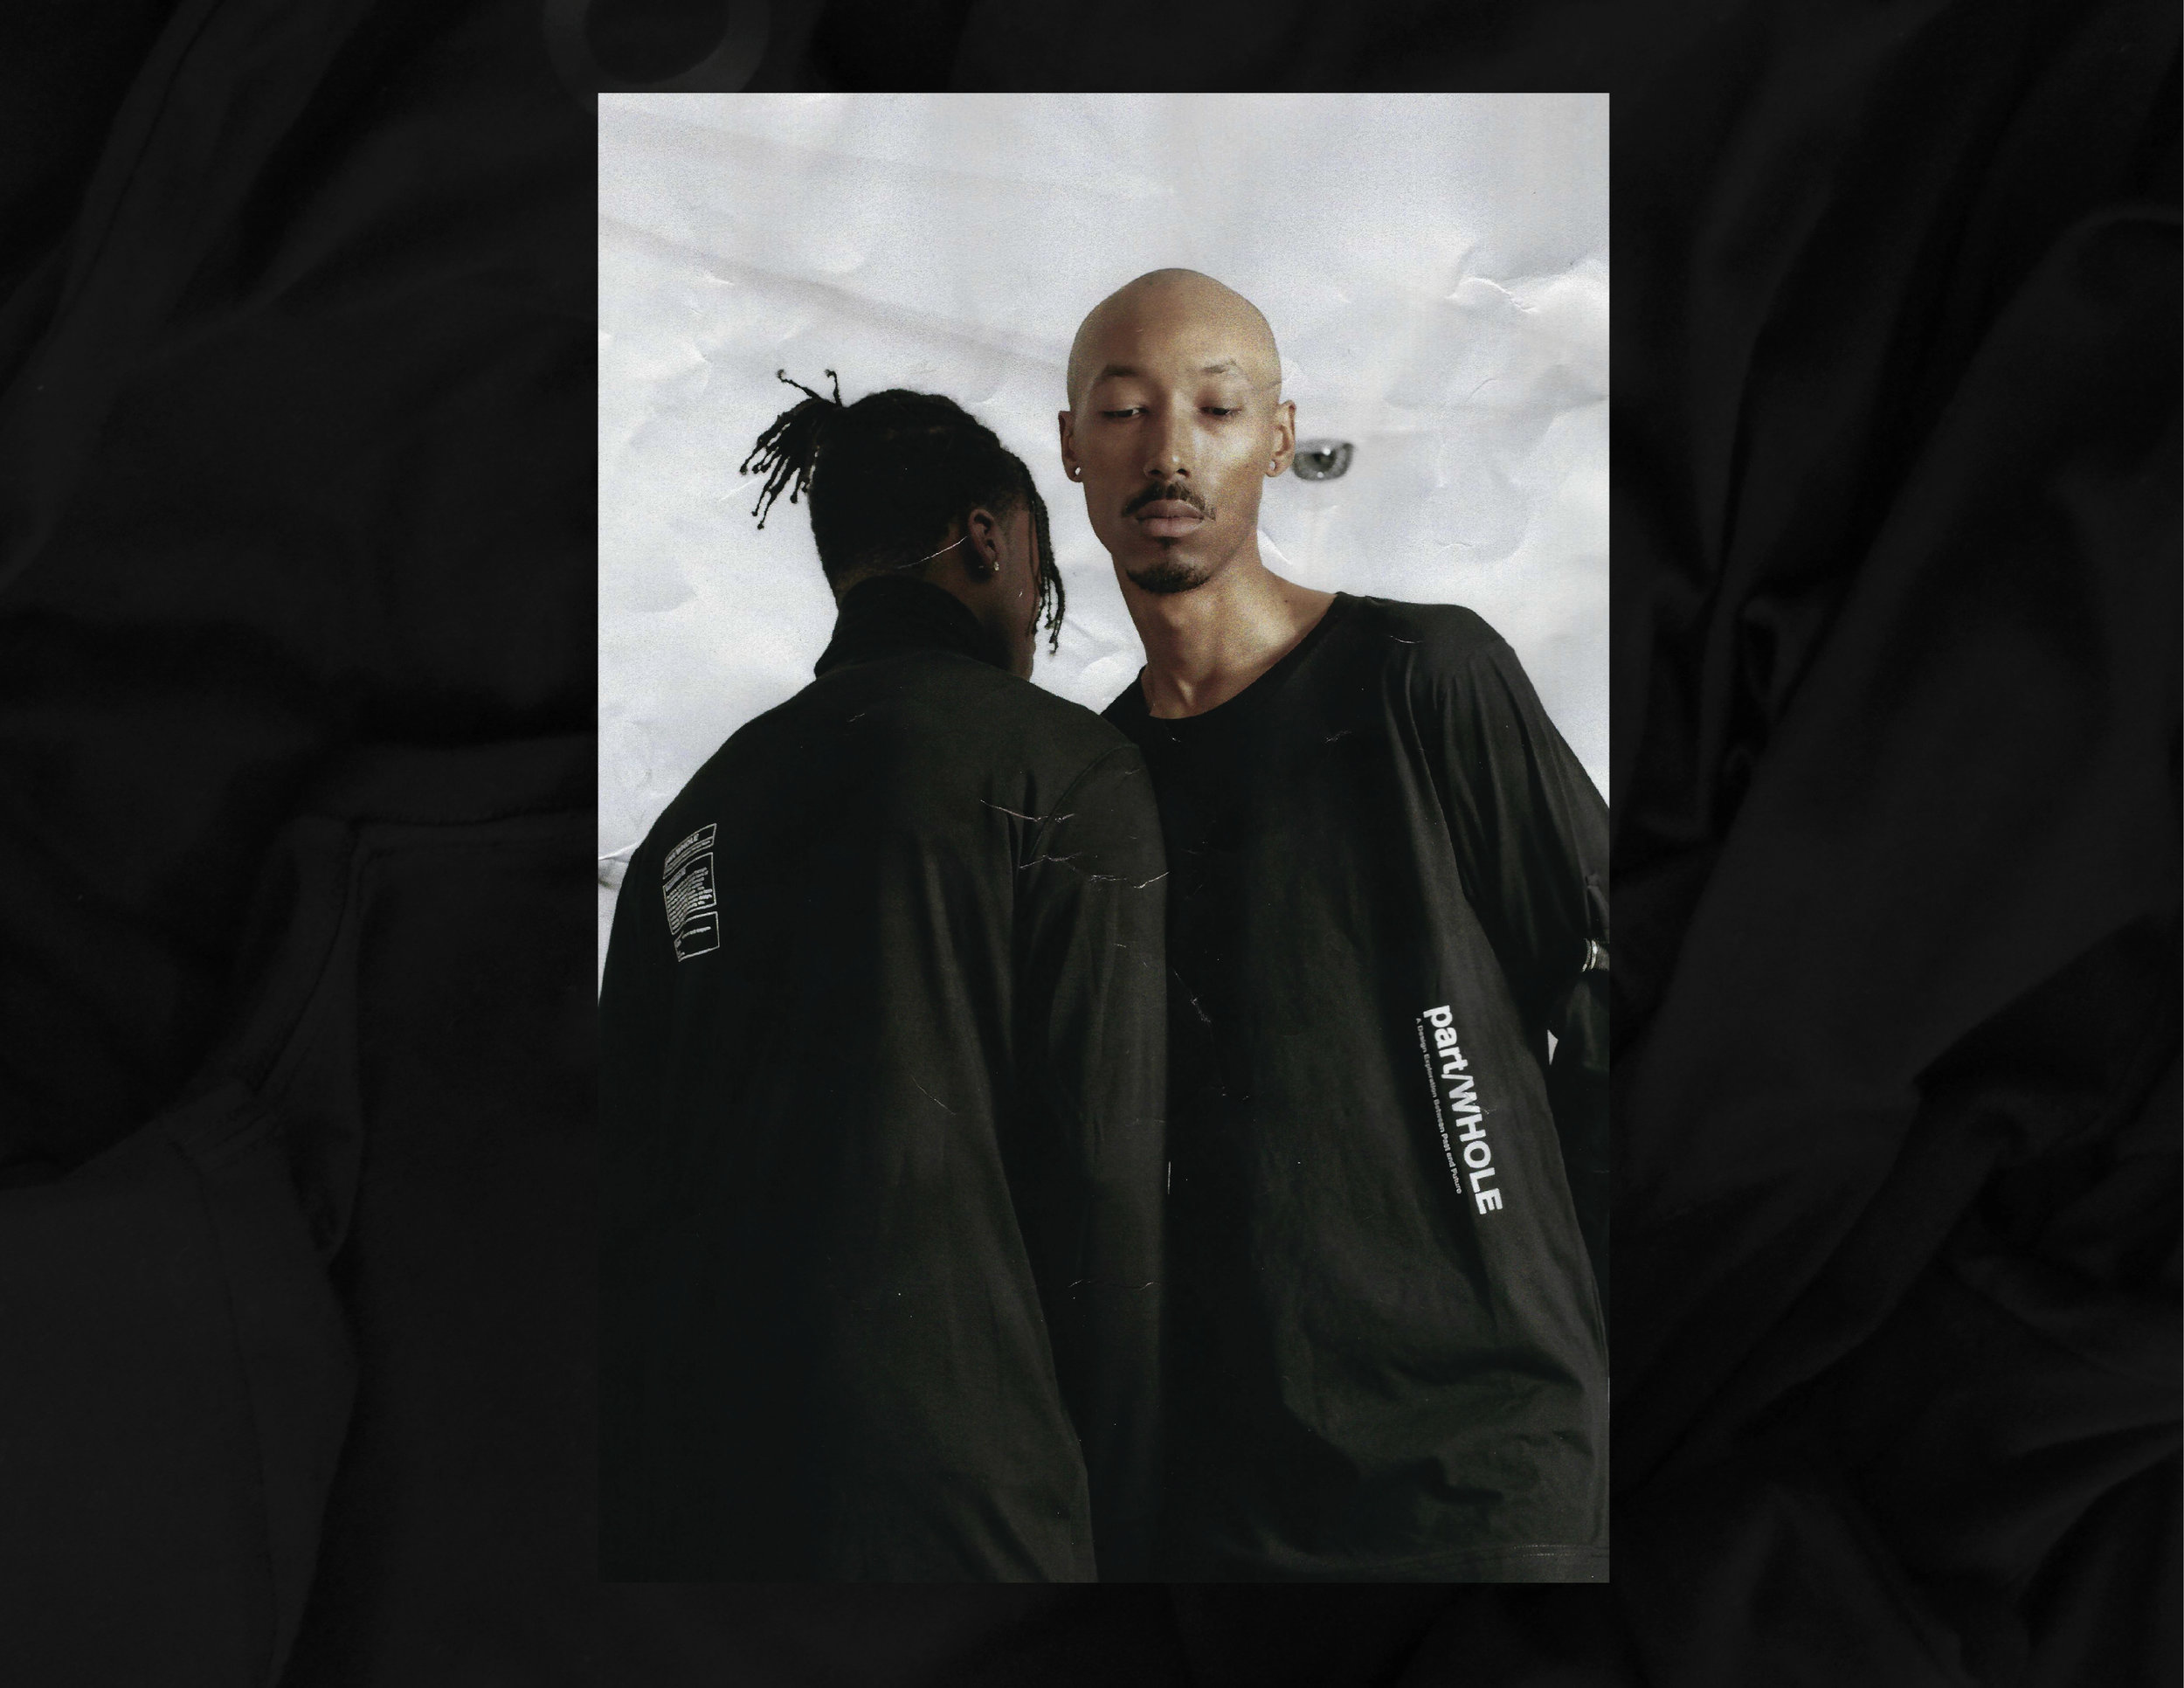 past_future lookbook FINAL6.jpg